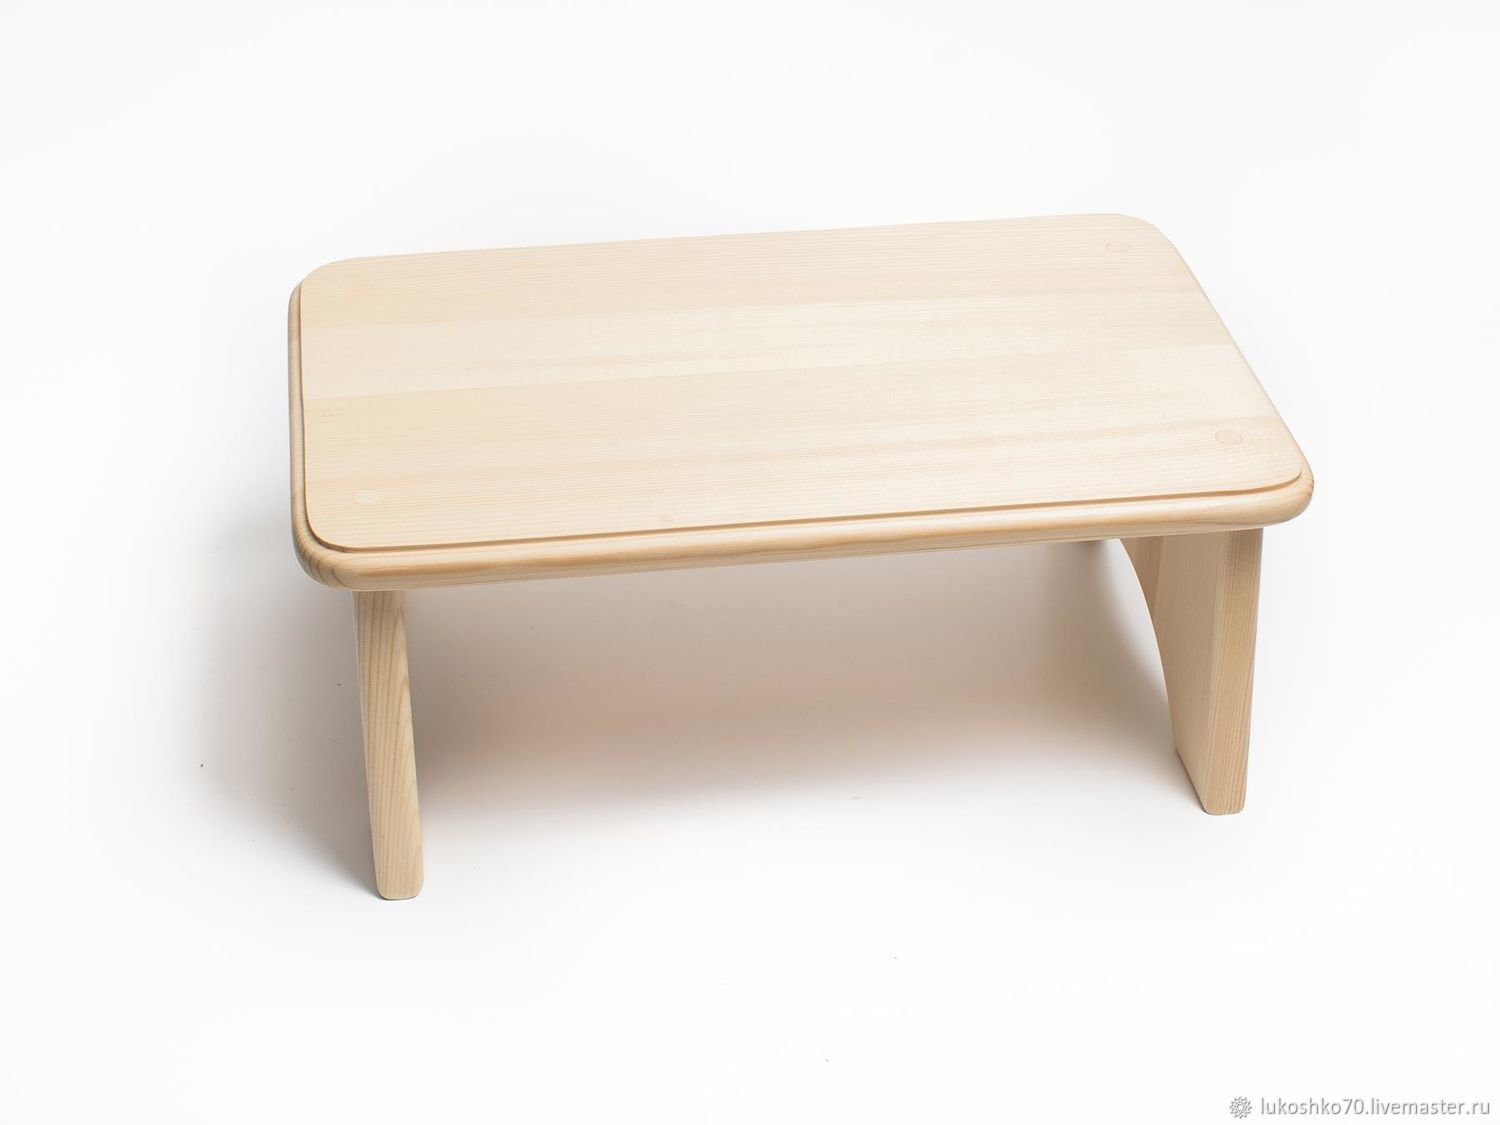 Wooden low bench for feet H16, Stools, Tomsk,  Фото №1